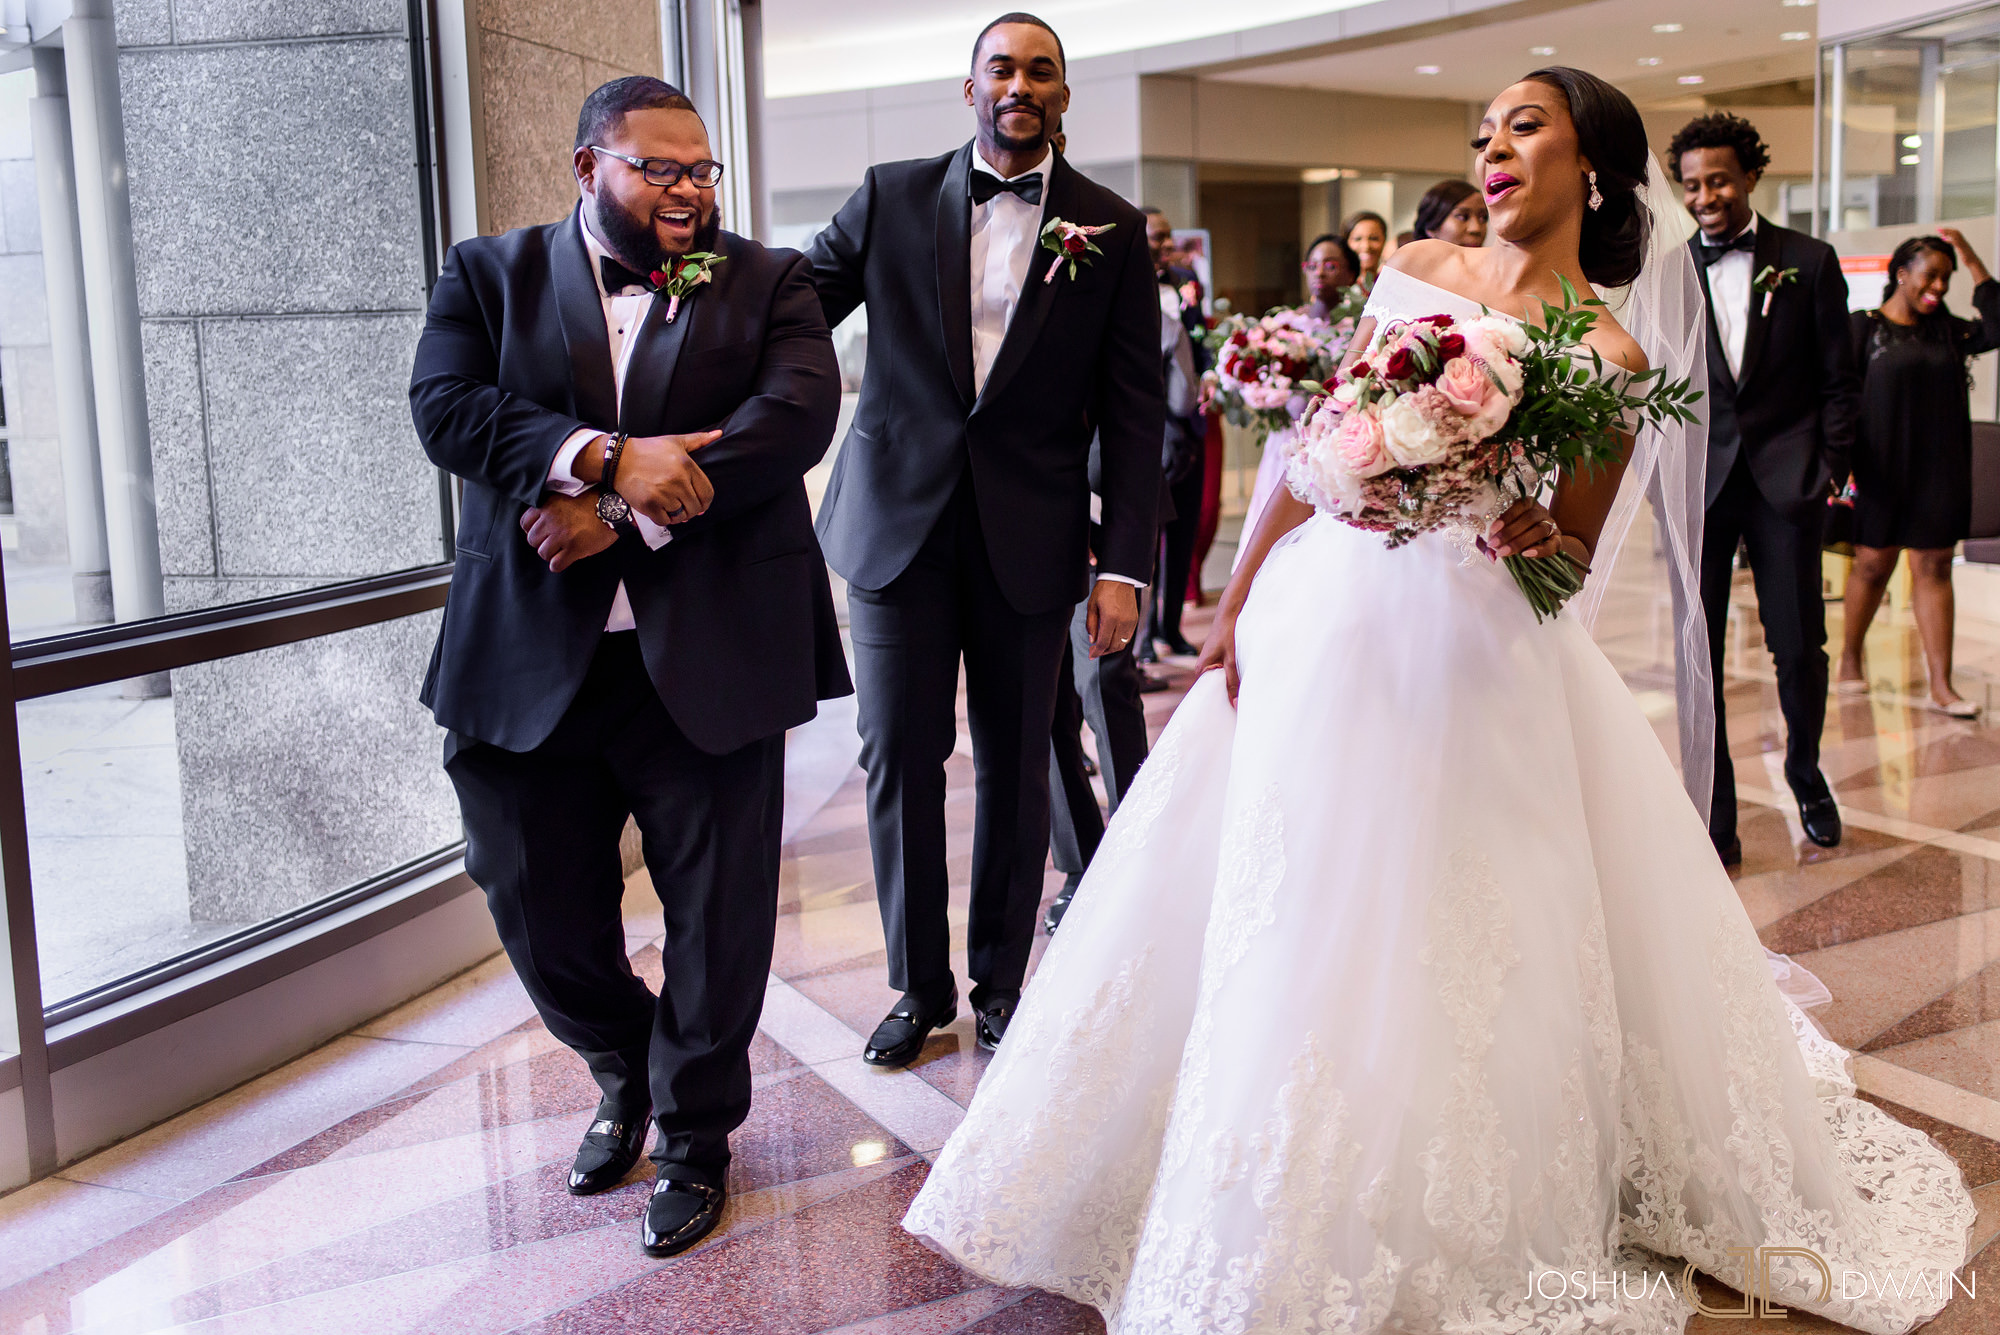 emerald-tolu--036-ronald-reagan-building-trade-center-best-washington-dc--wedding-photographer-joshua-dwain